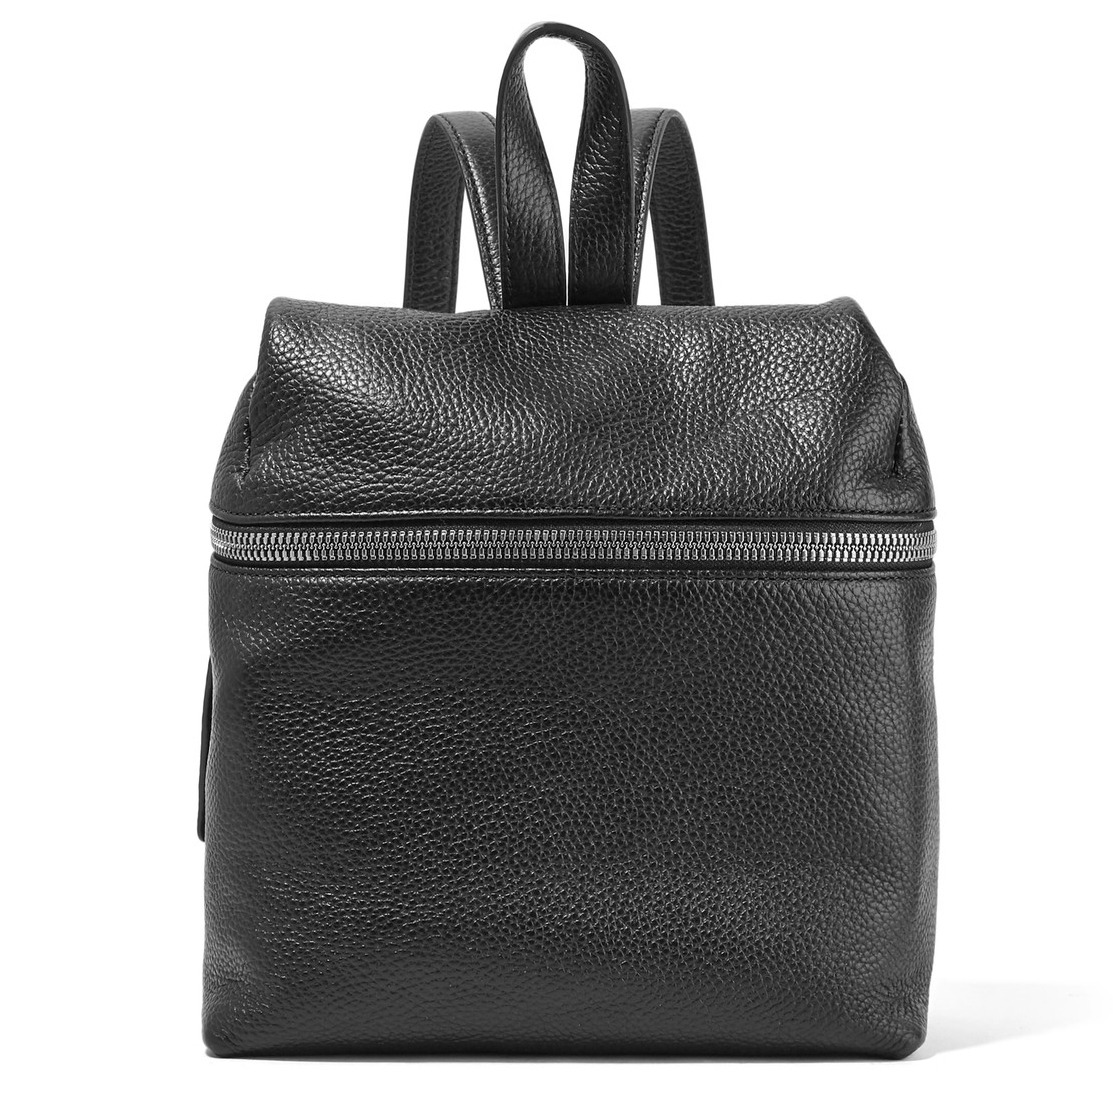 Kara Small Leather Backpack